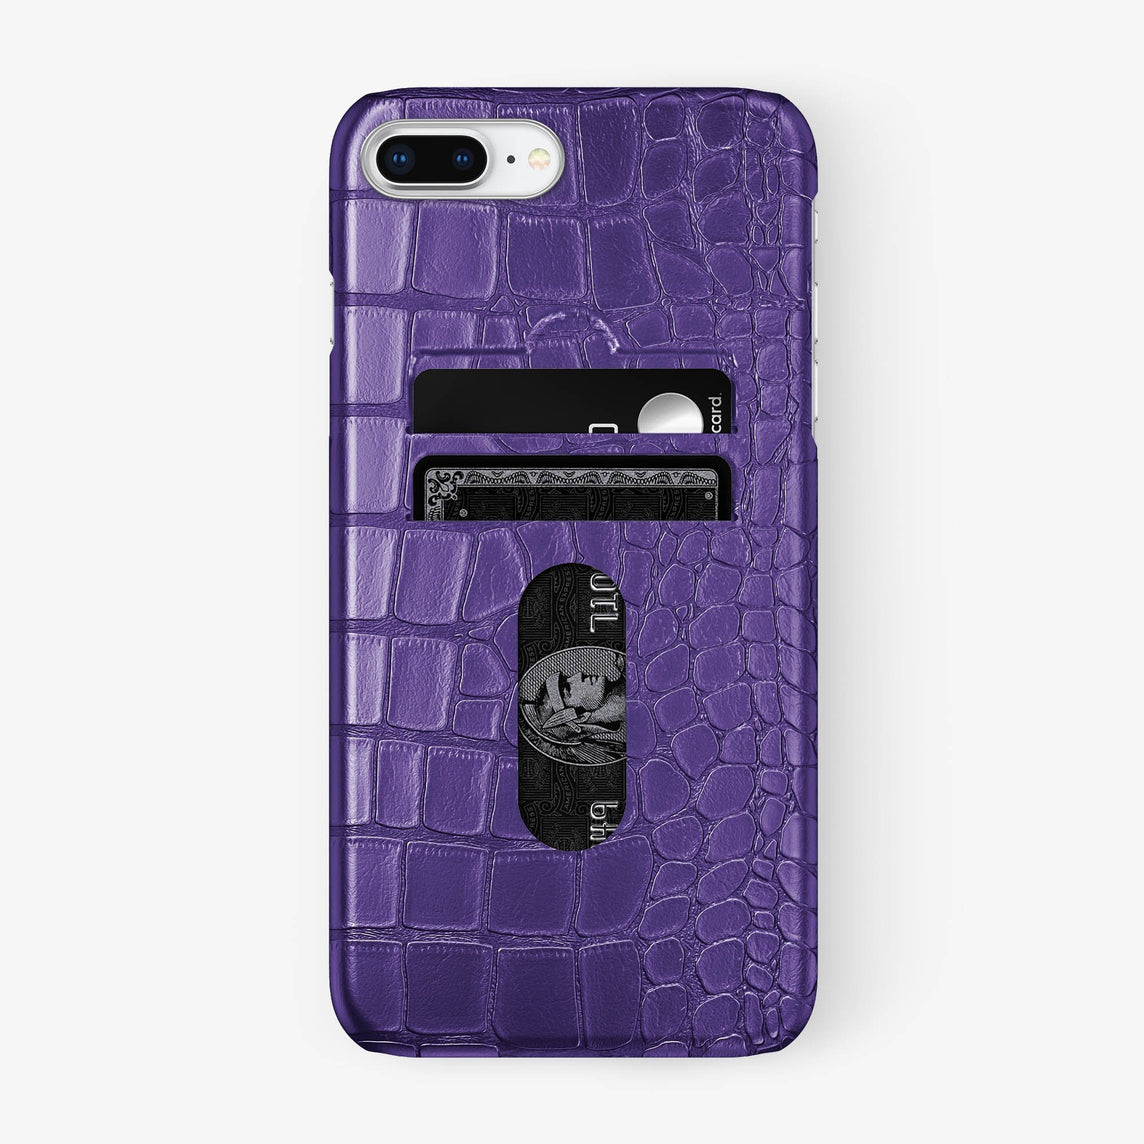 Alligator Card Holder Case iPhone 7/8 Plus | Purple - Stainless Steel - Hadoro